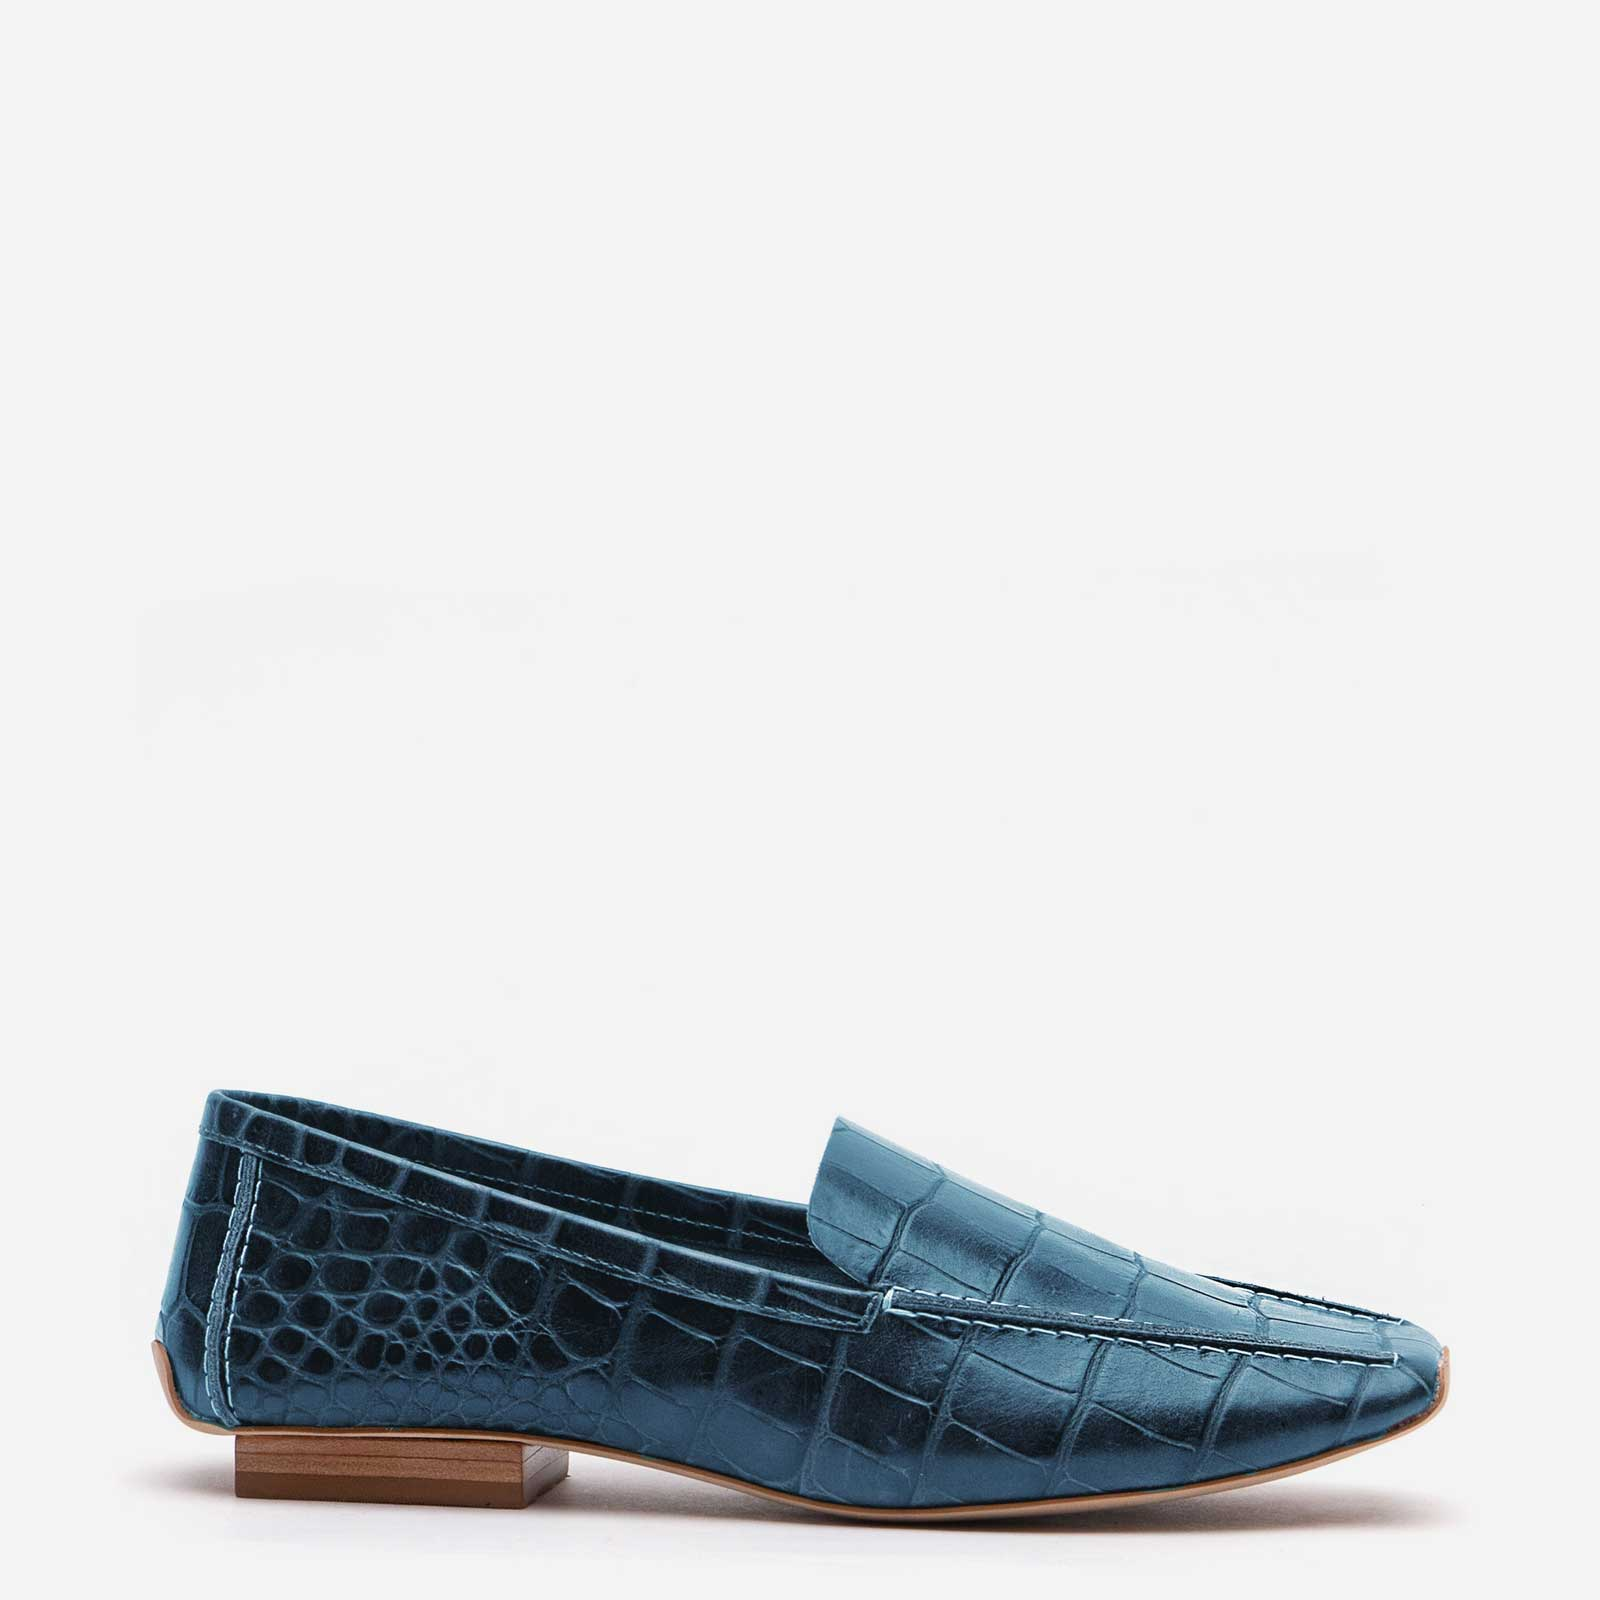 Elyce Loafer Croc Embossed Blue - Frances Valentine